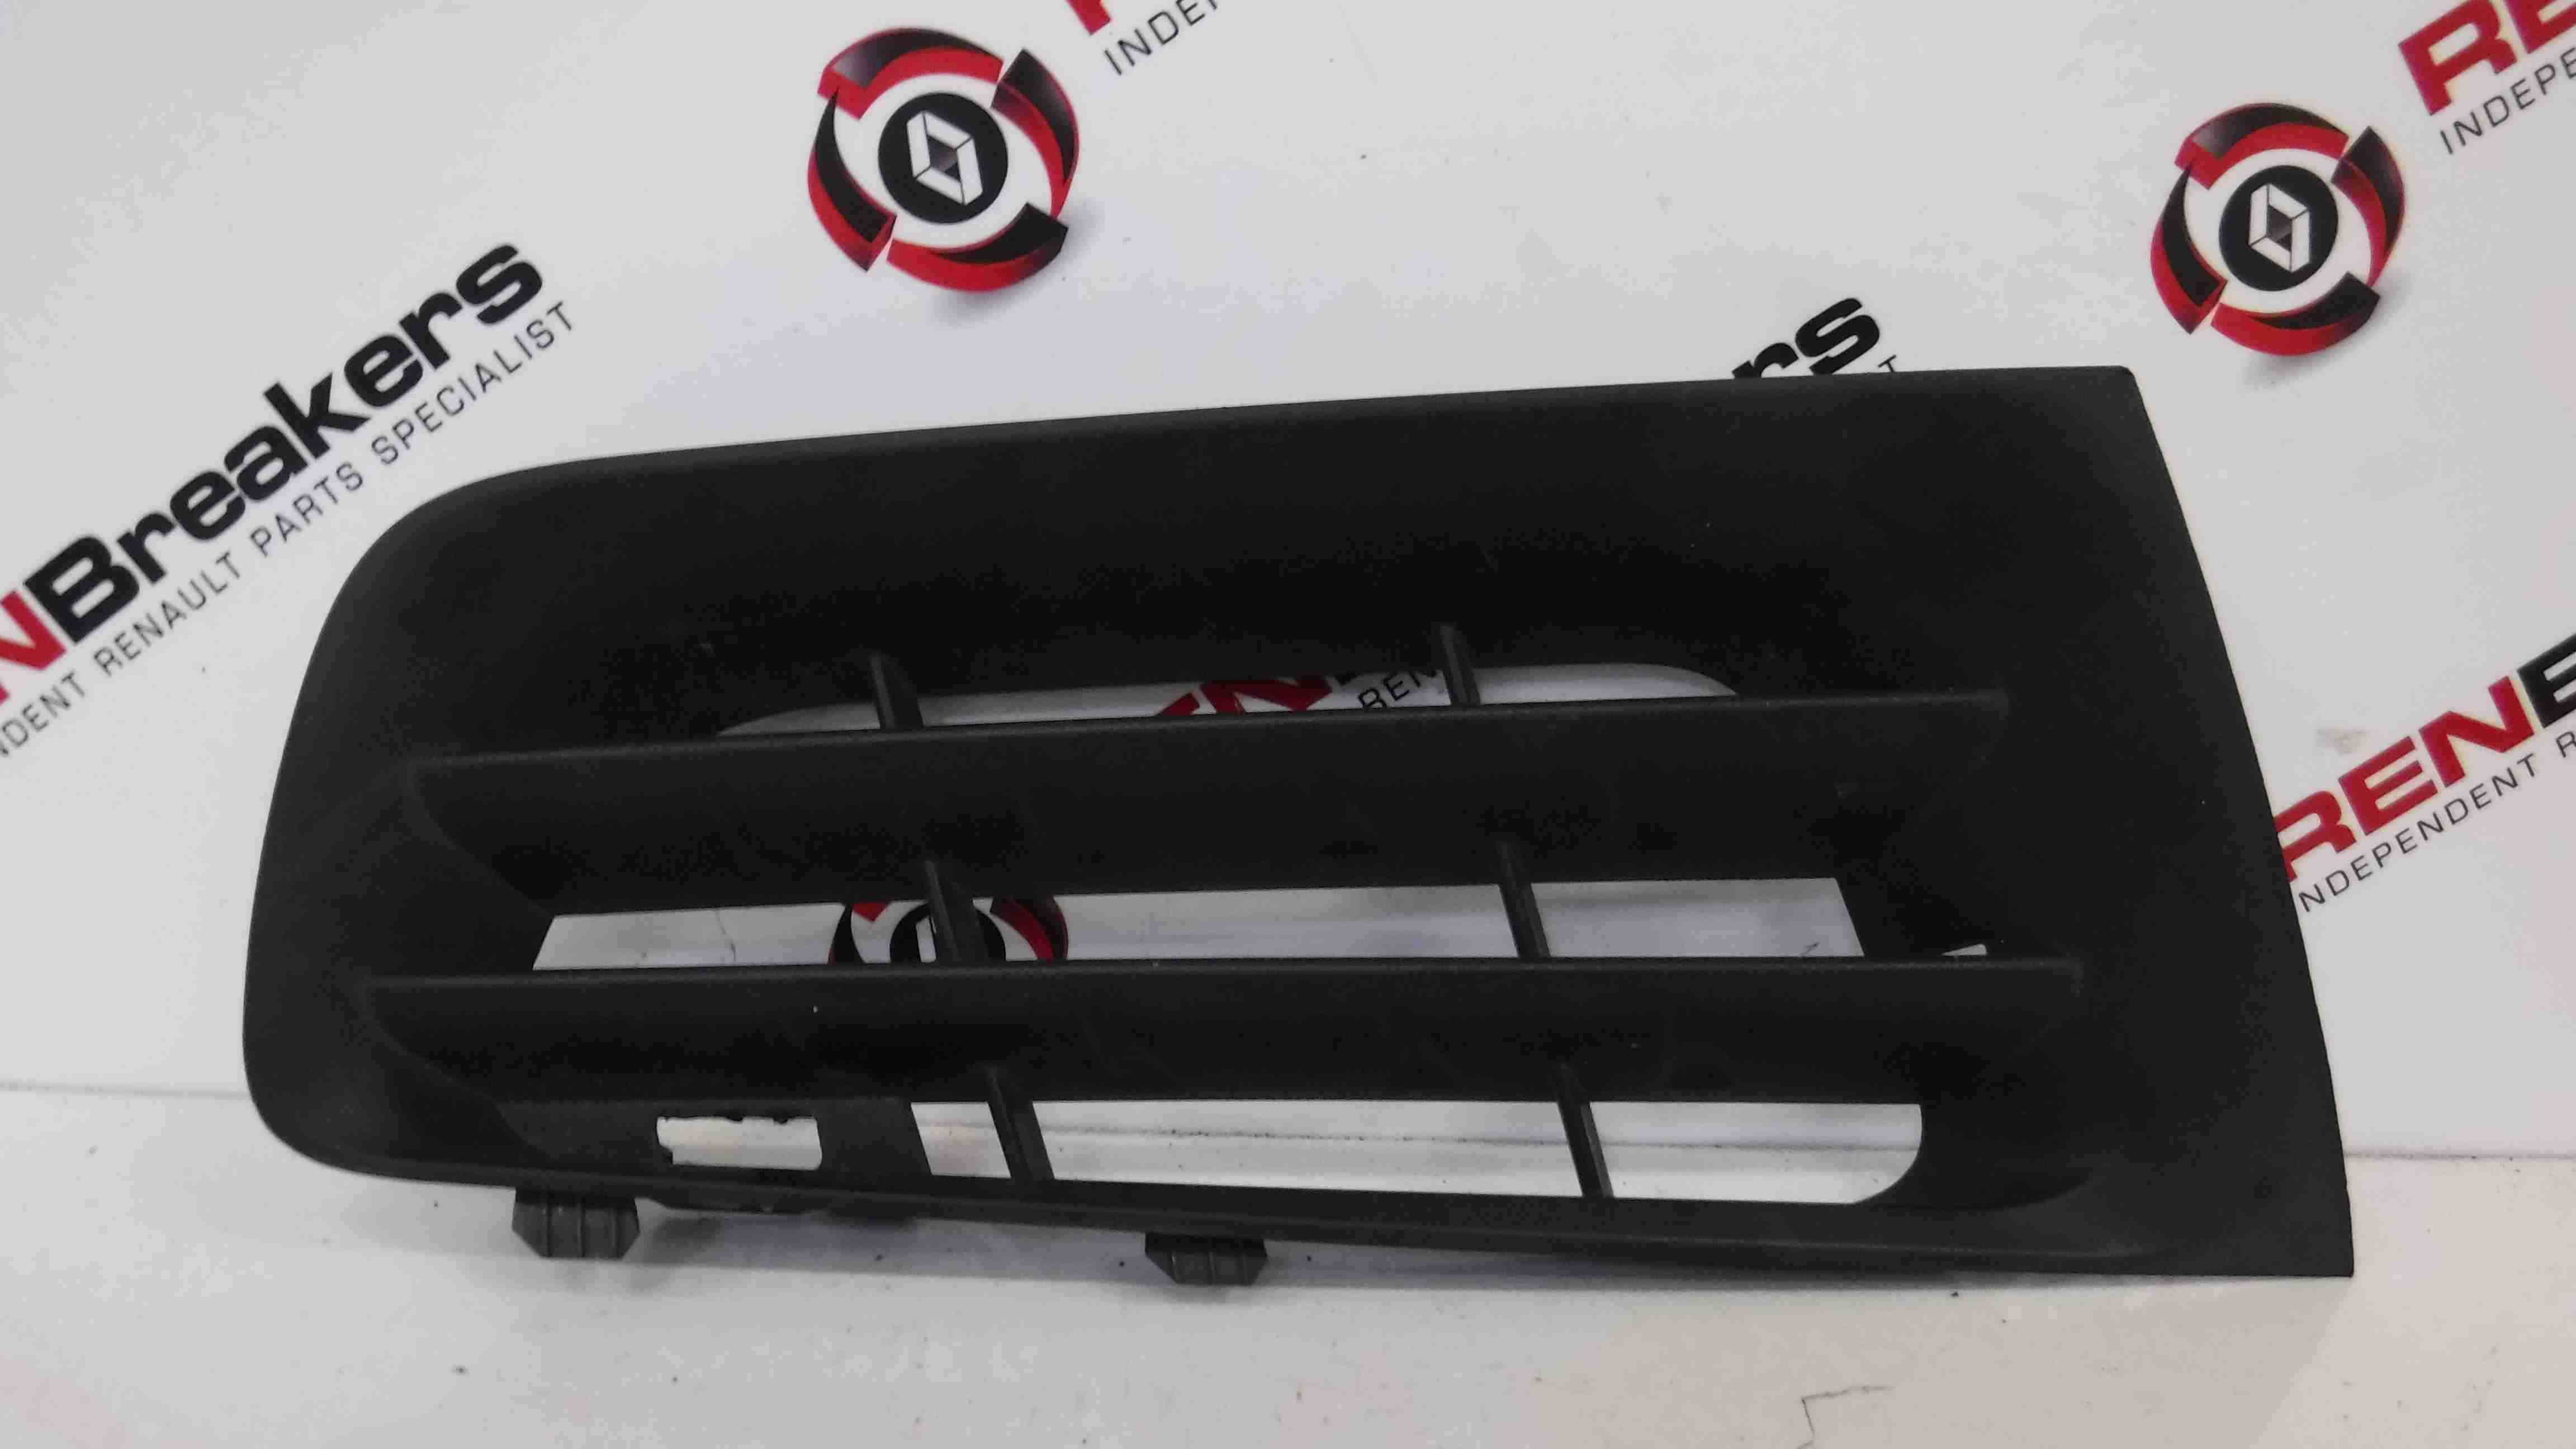 Renault Megane 2006-2008 Drivers OSF Front Bumper Grill Grille Insert 8200412380